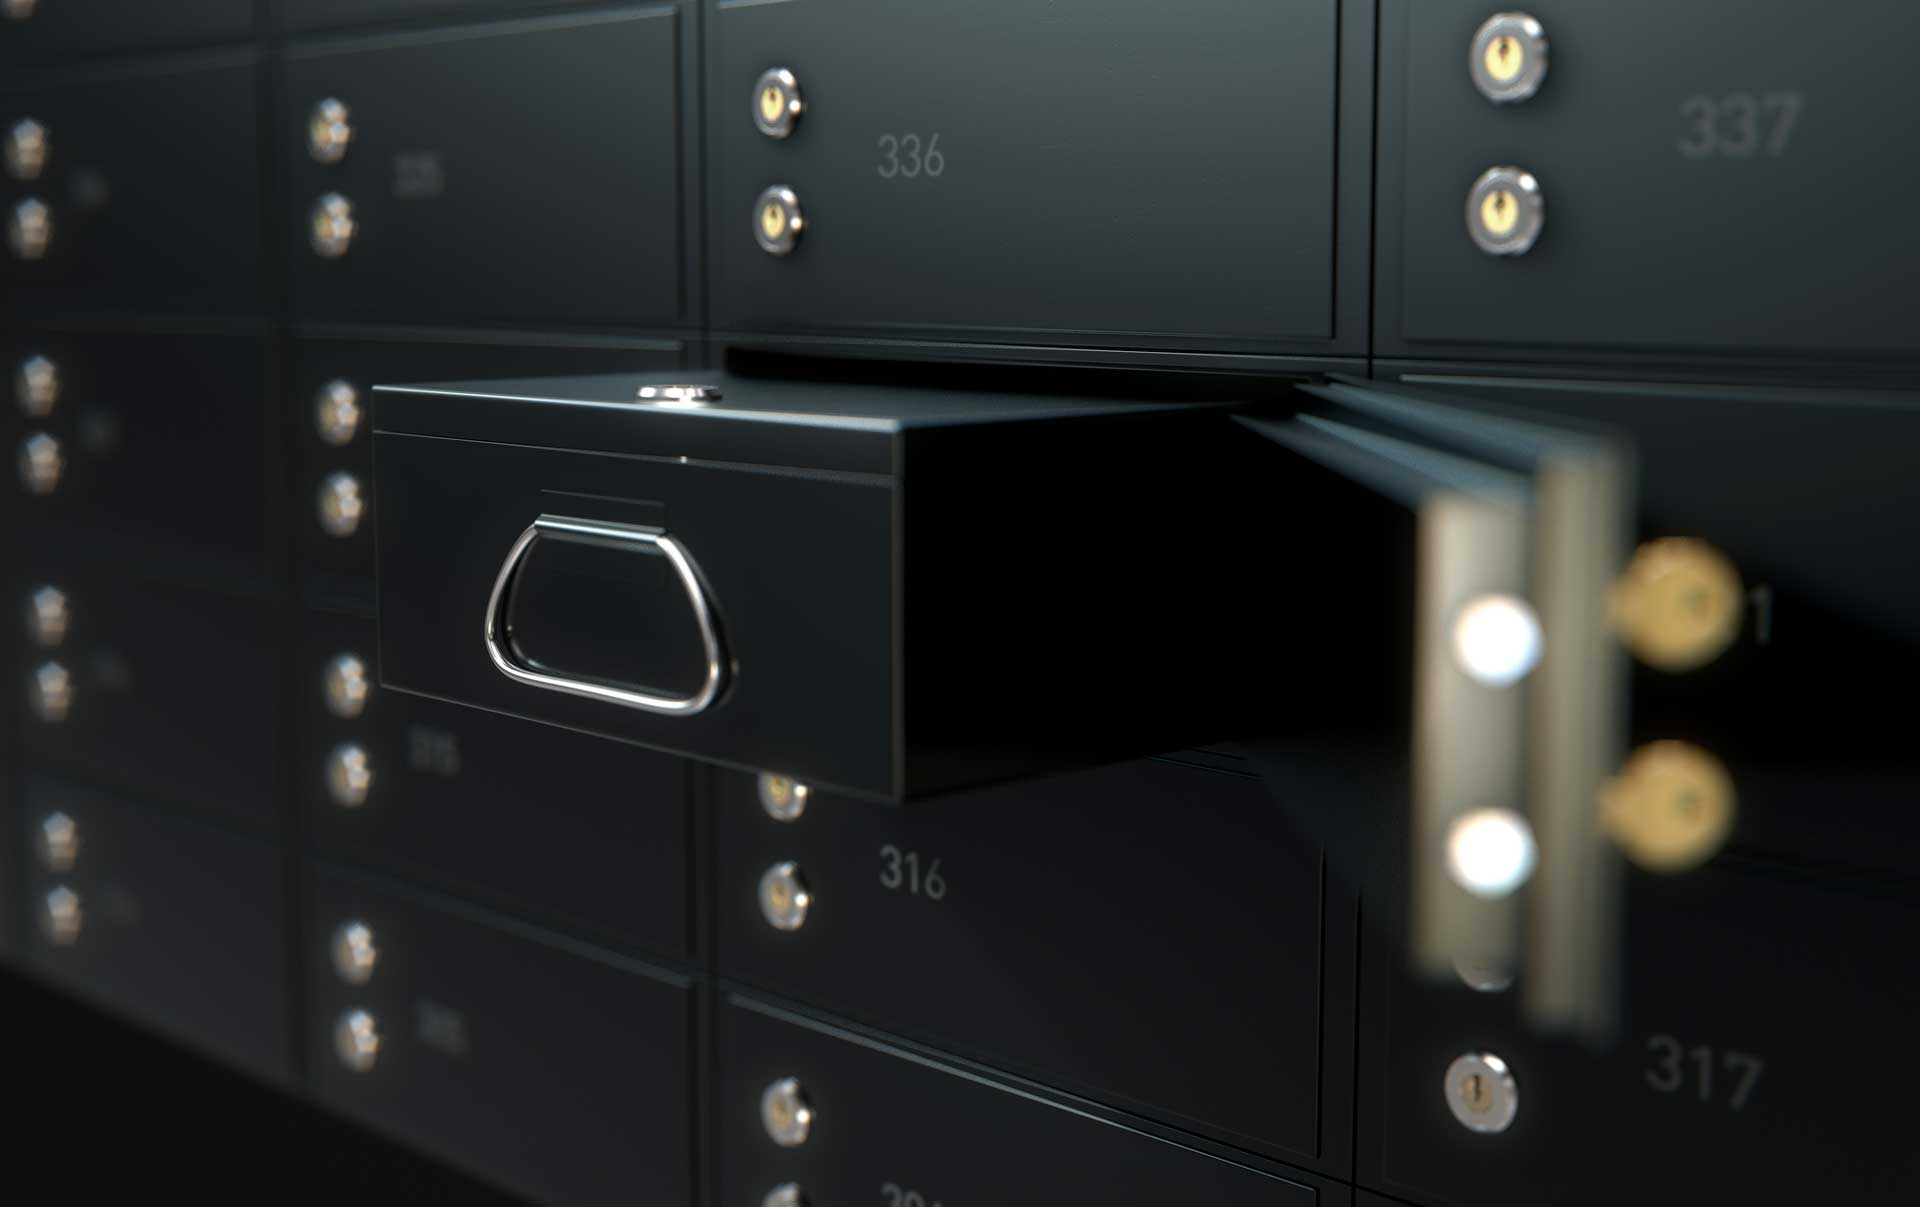 Black safety deposit box